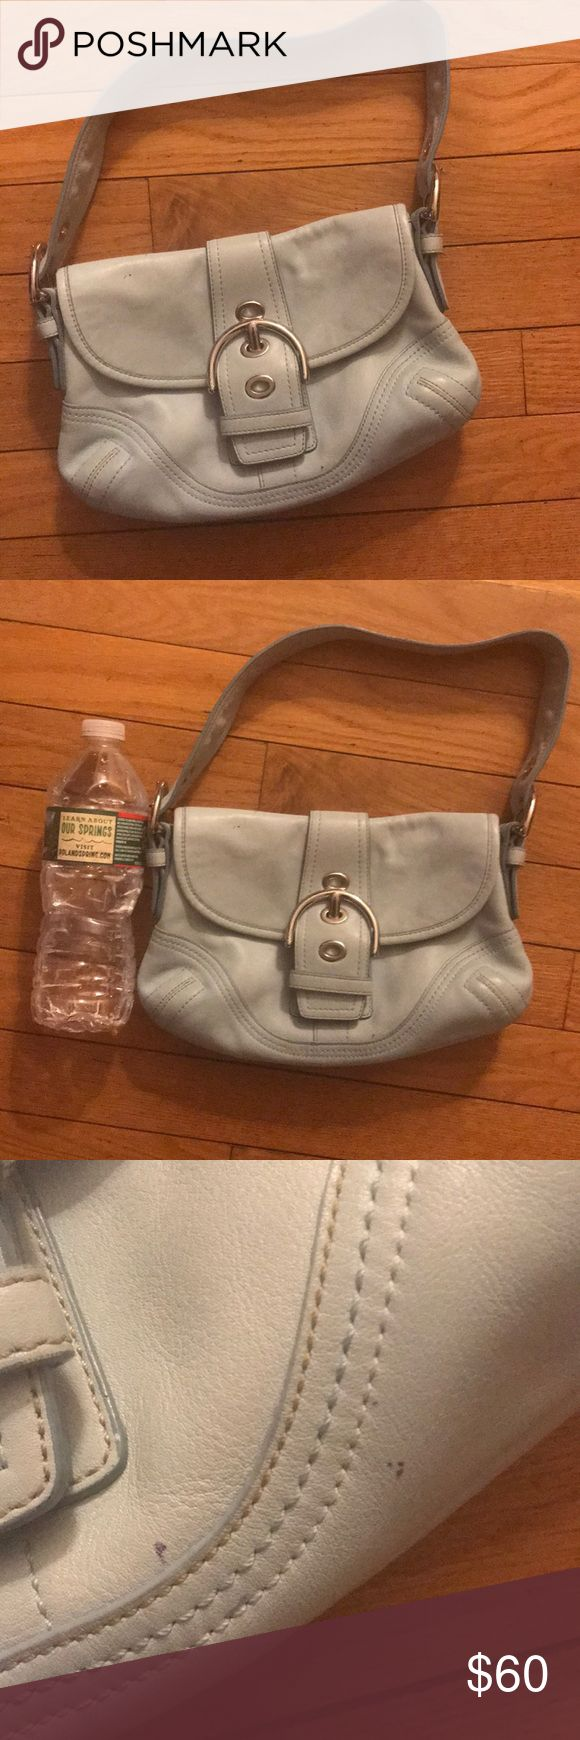 Adorable mint green Coach purse Adorable mint green coach purse! Not in perfect condition, but definitely in great condition considering it is over 10 years old. I only used it a couple of times and it has been in storage ever since. Coach Bags Mini Bags